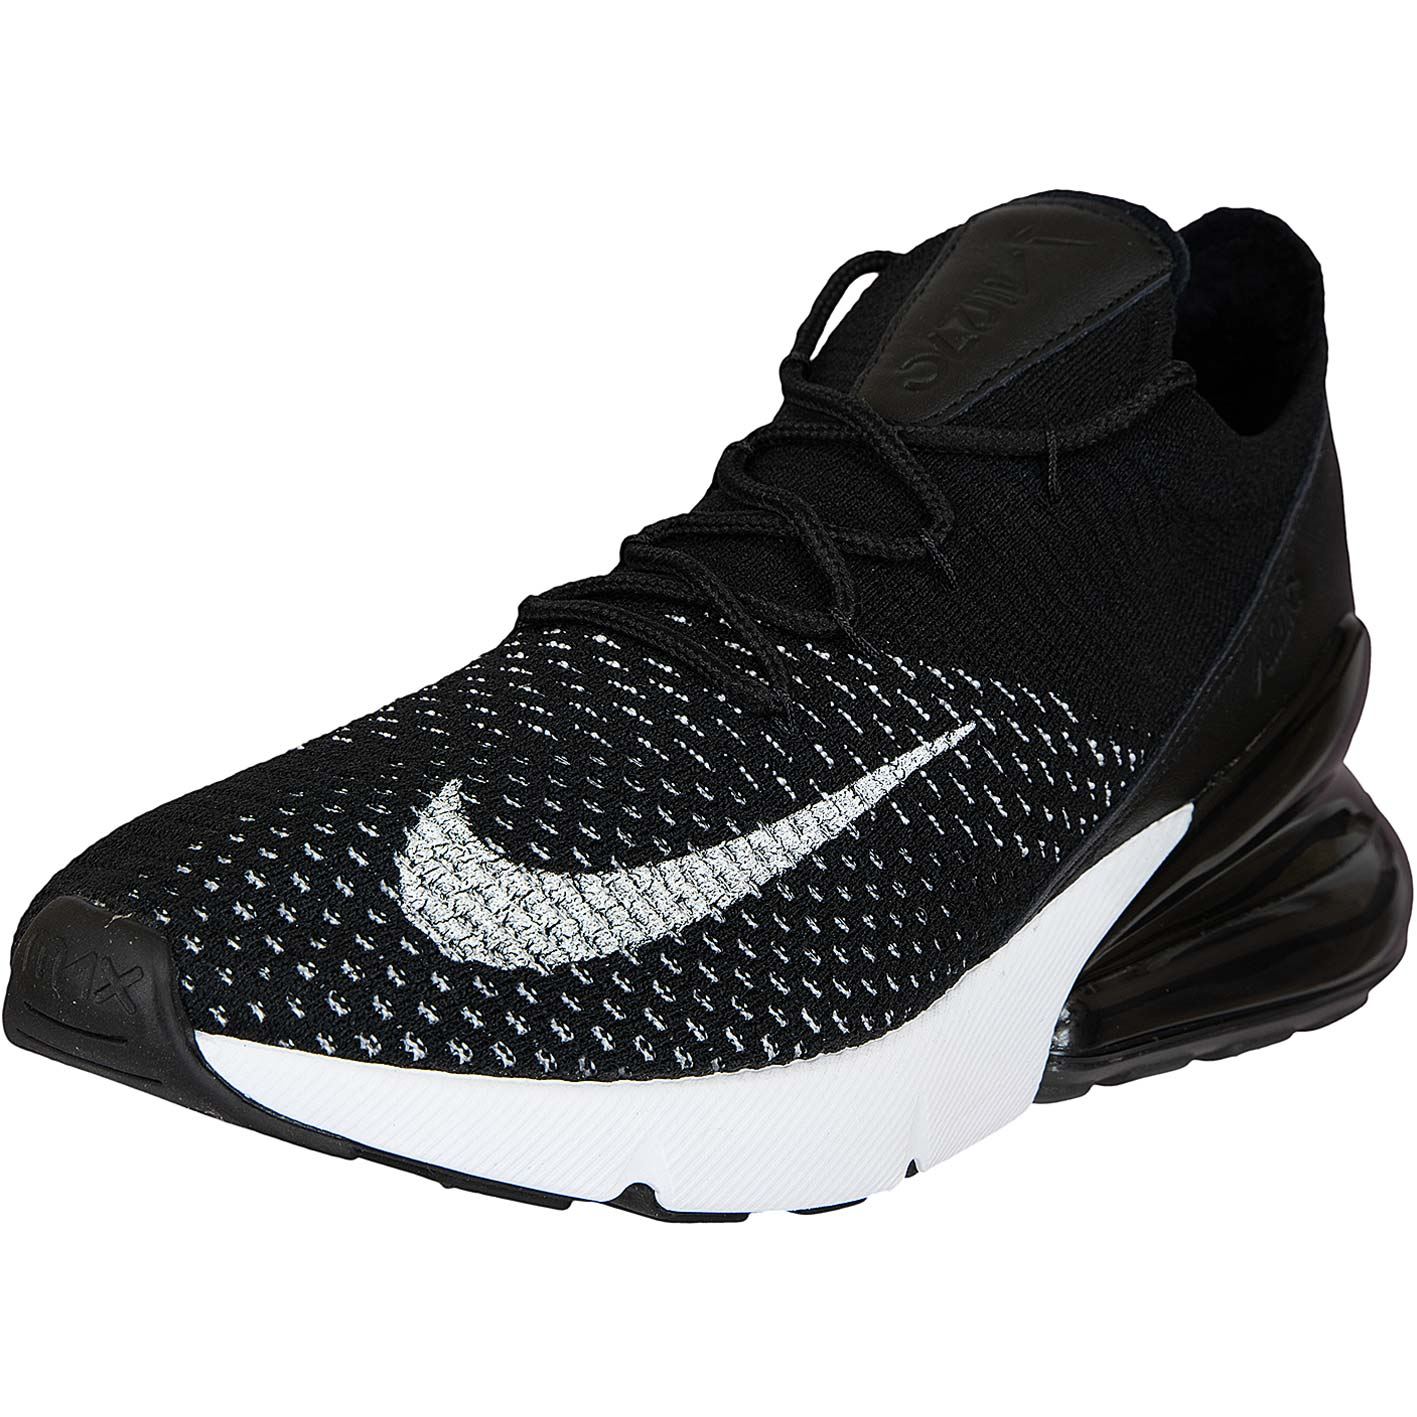 uk availability 8cd19 0aa7b ... where can i buy nike damen sneaker air max 270 flyknit schwarz weiß  98461 b16c3